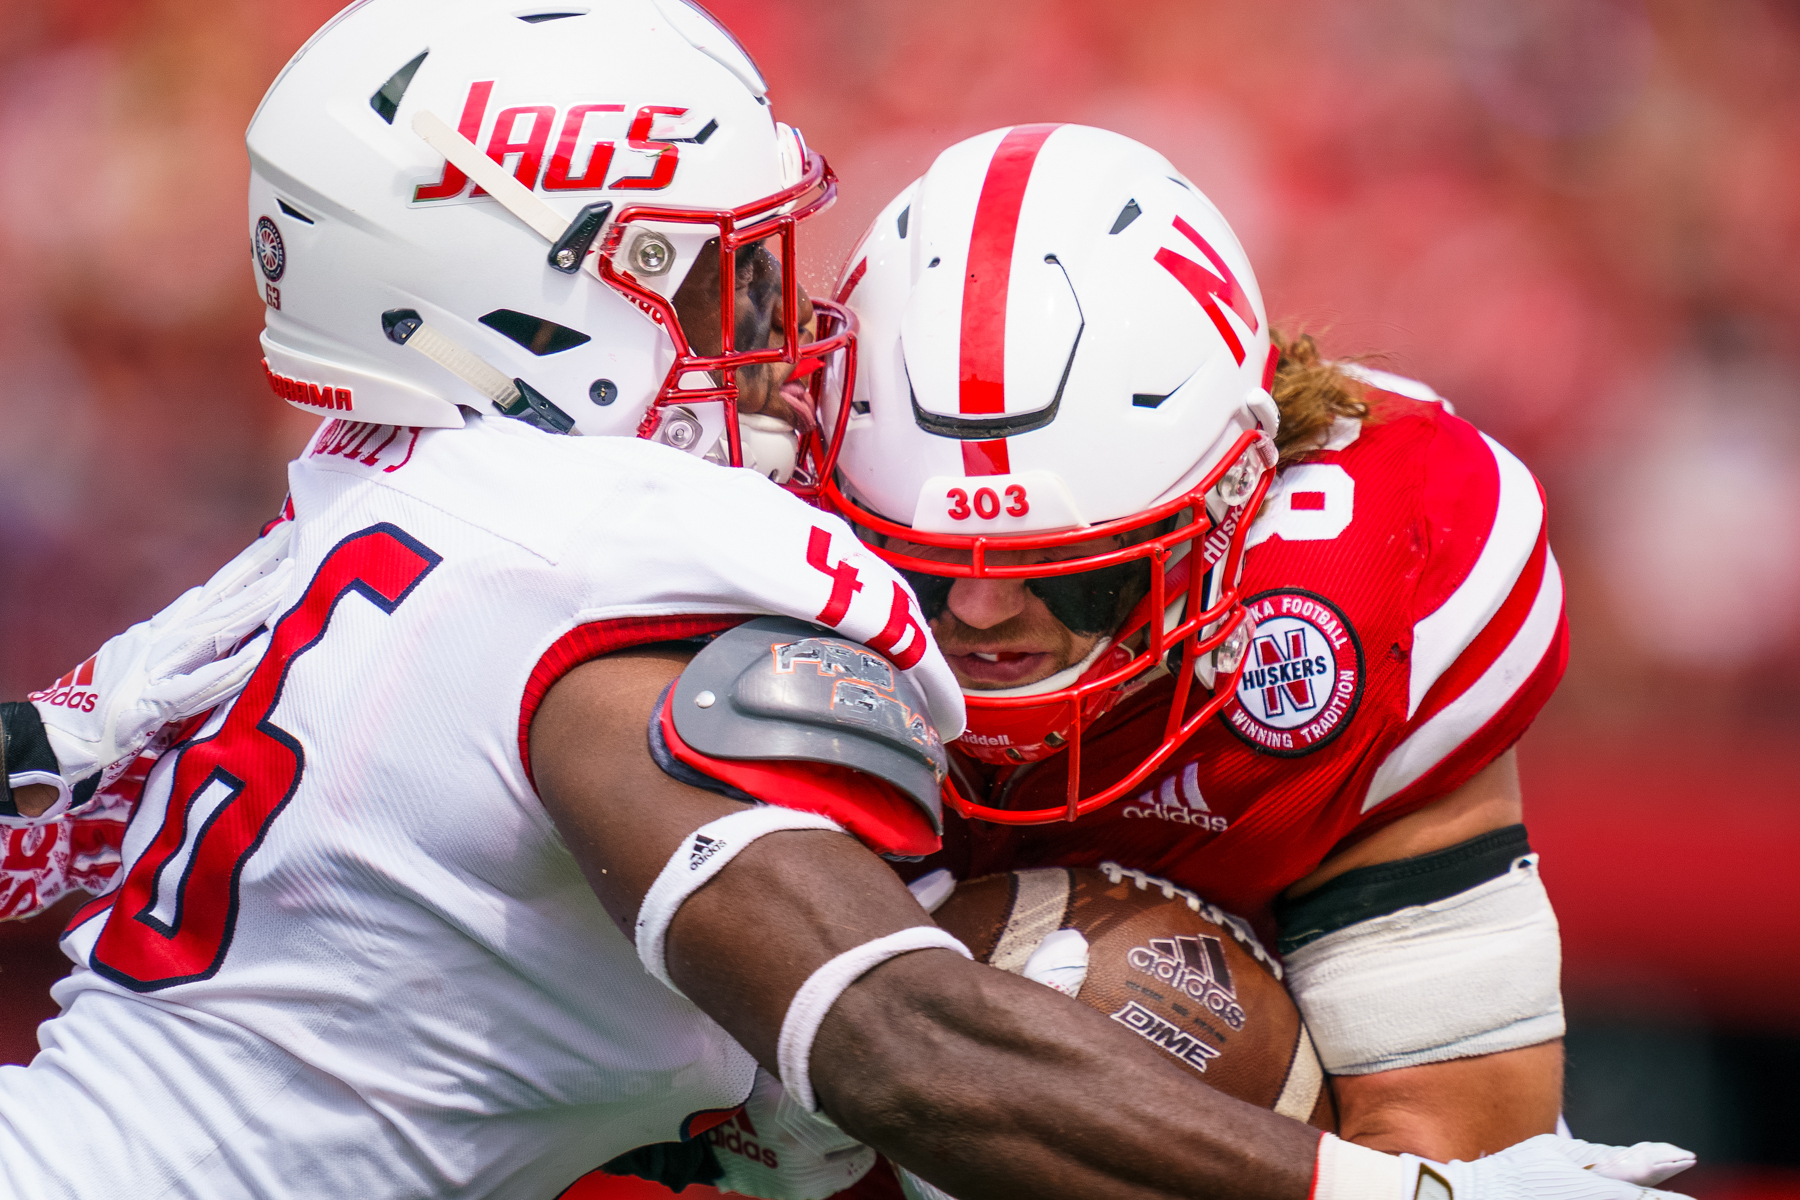 Jack Stoll #86 of the Nebraska Cornhuskers during Nebraska's 35-21 win over South Alabama at Memorial Stadium in Lincoln, Nebraska on Aug. 31, 2019.   © Aaron Babcock